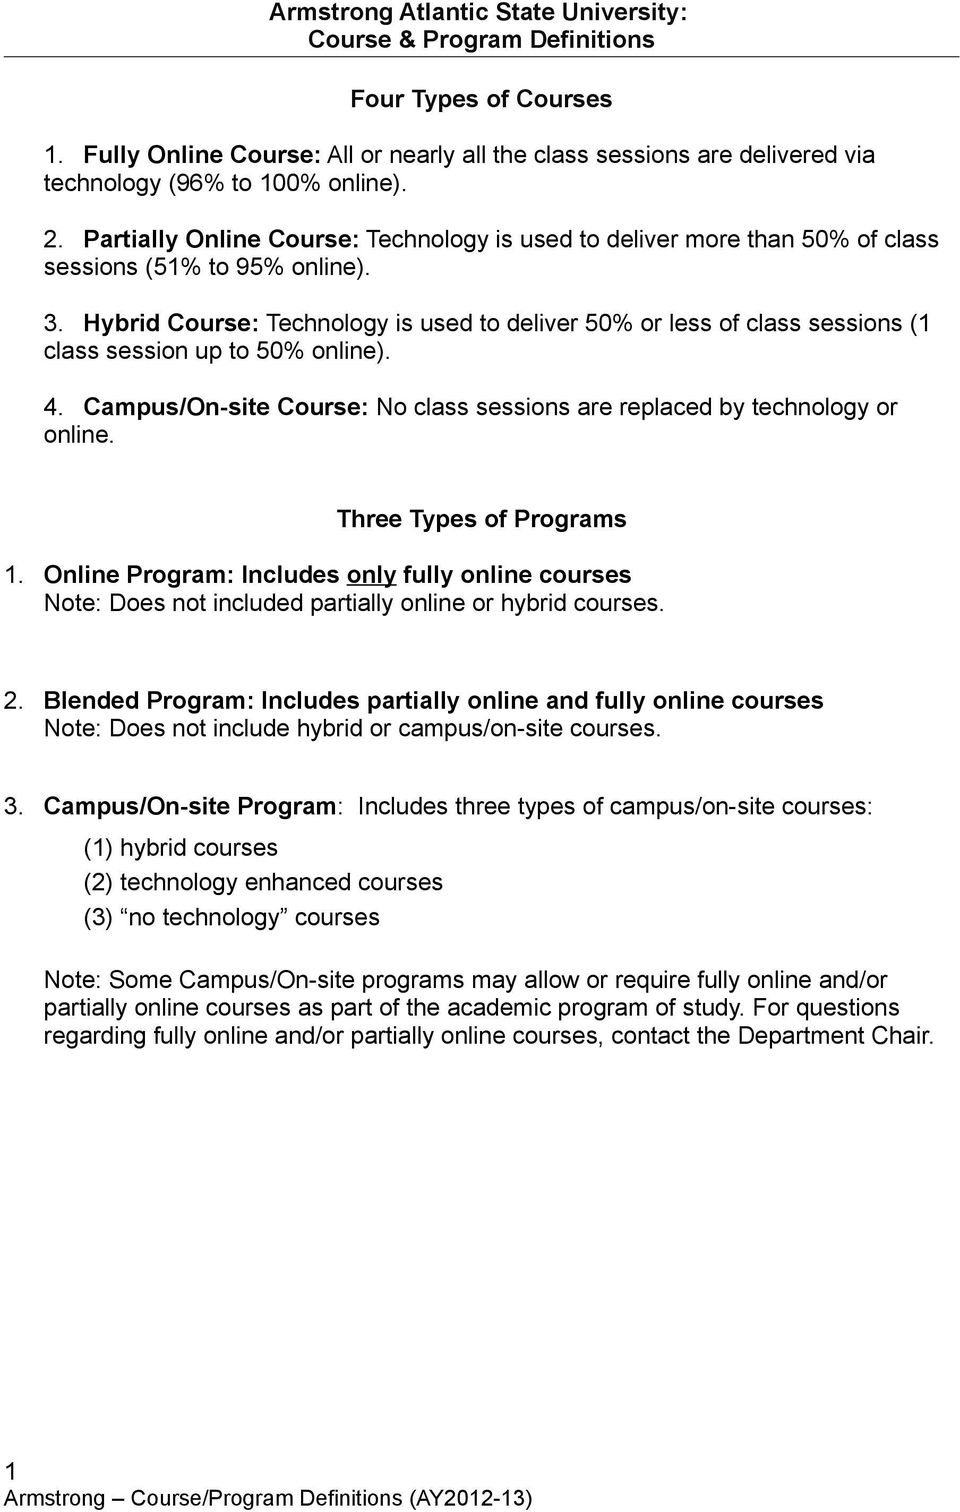 Hybrid Course: Technology is used to deliver 50% or less of class sessions (1 class session up to 50% online). 4. Campus/On-site Course: No class sessions are replaced by technology or online.